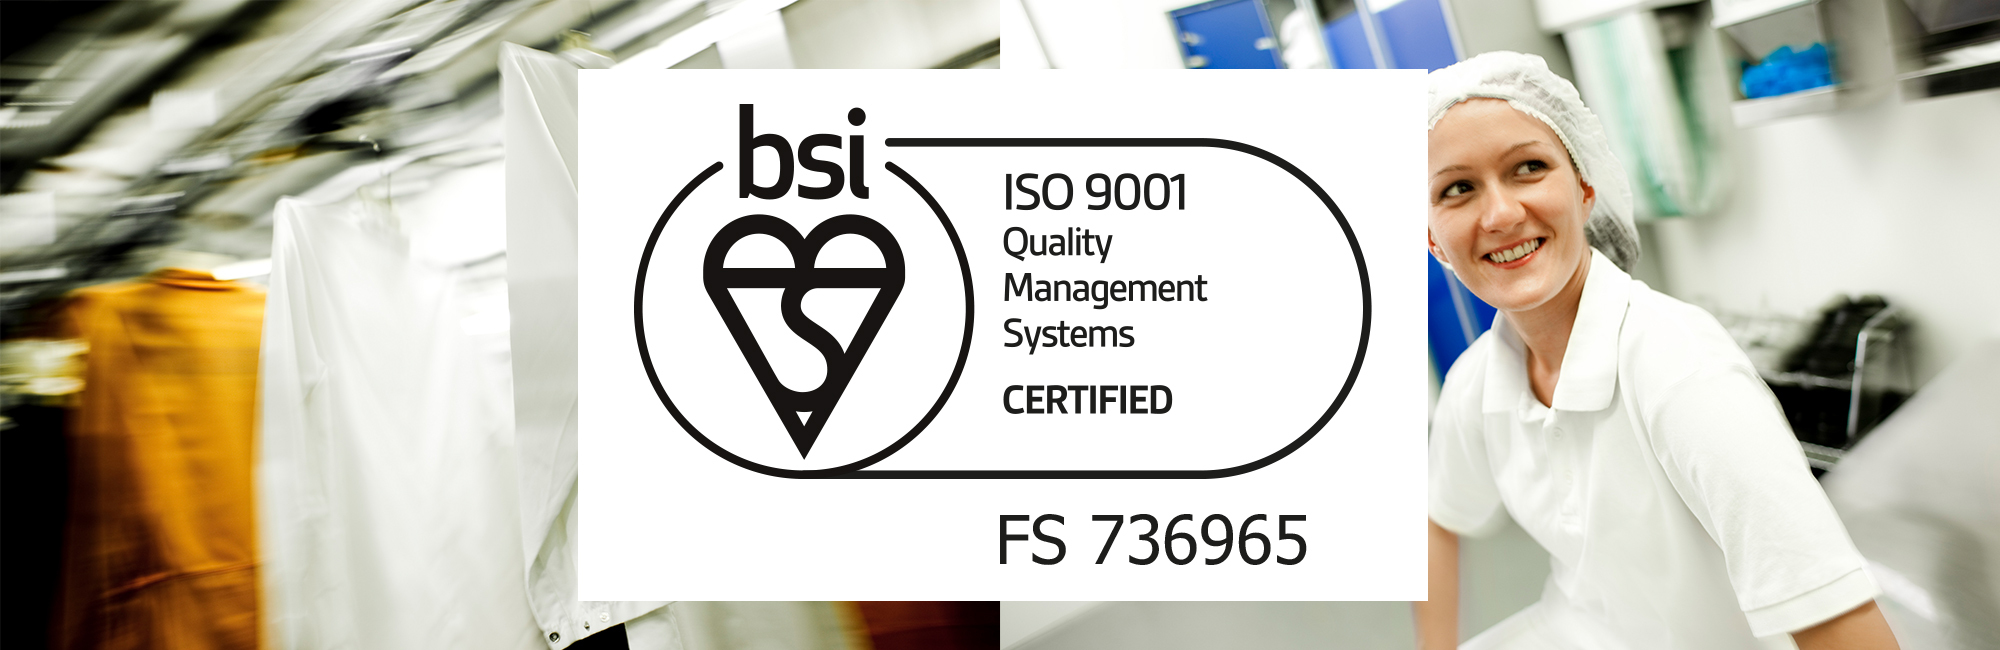 CLEAN are proud to announce ISO 9001:2015 Certification for quality management - News - CLEAN Services